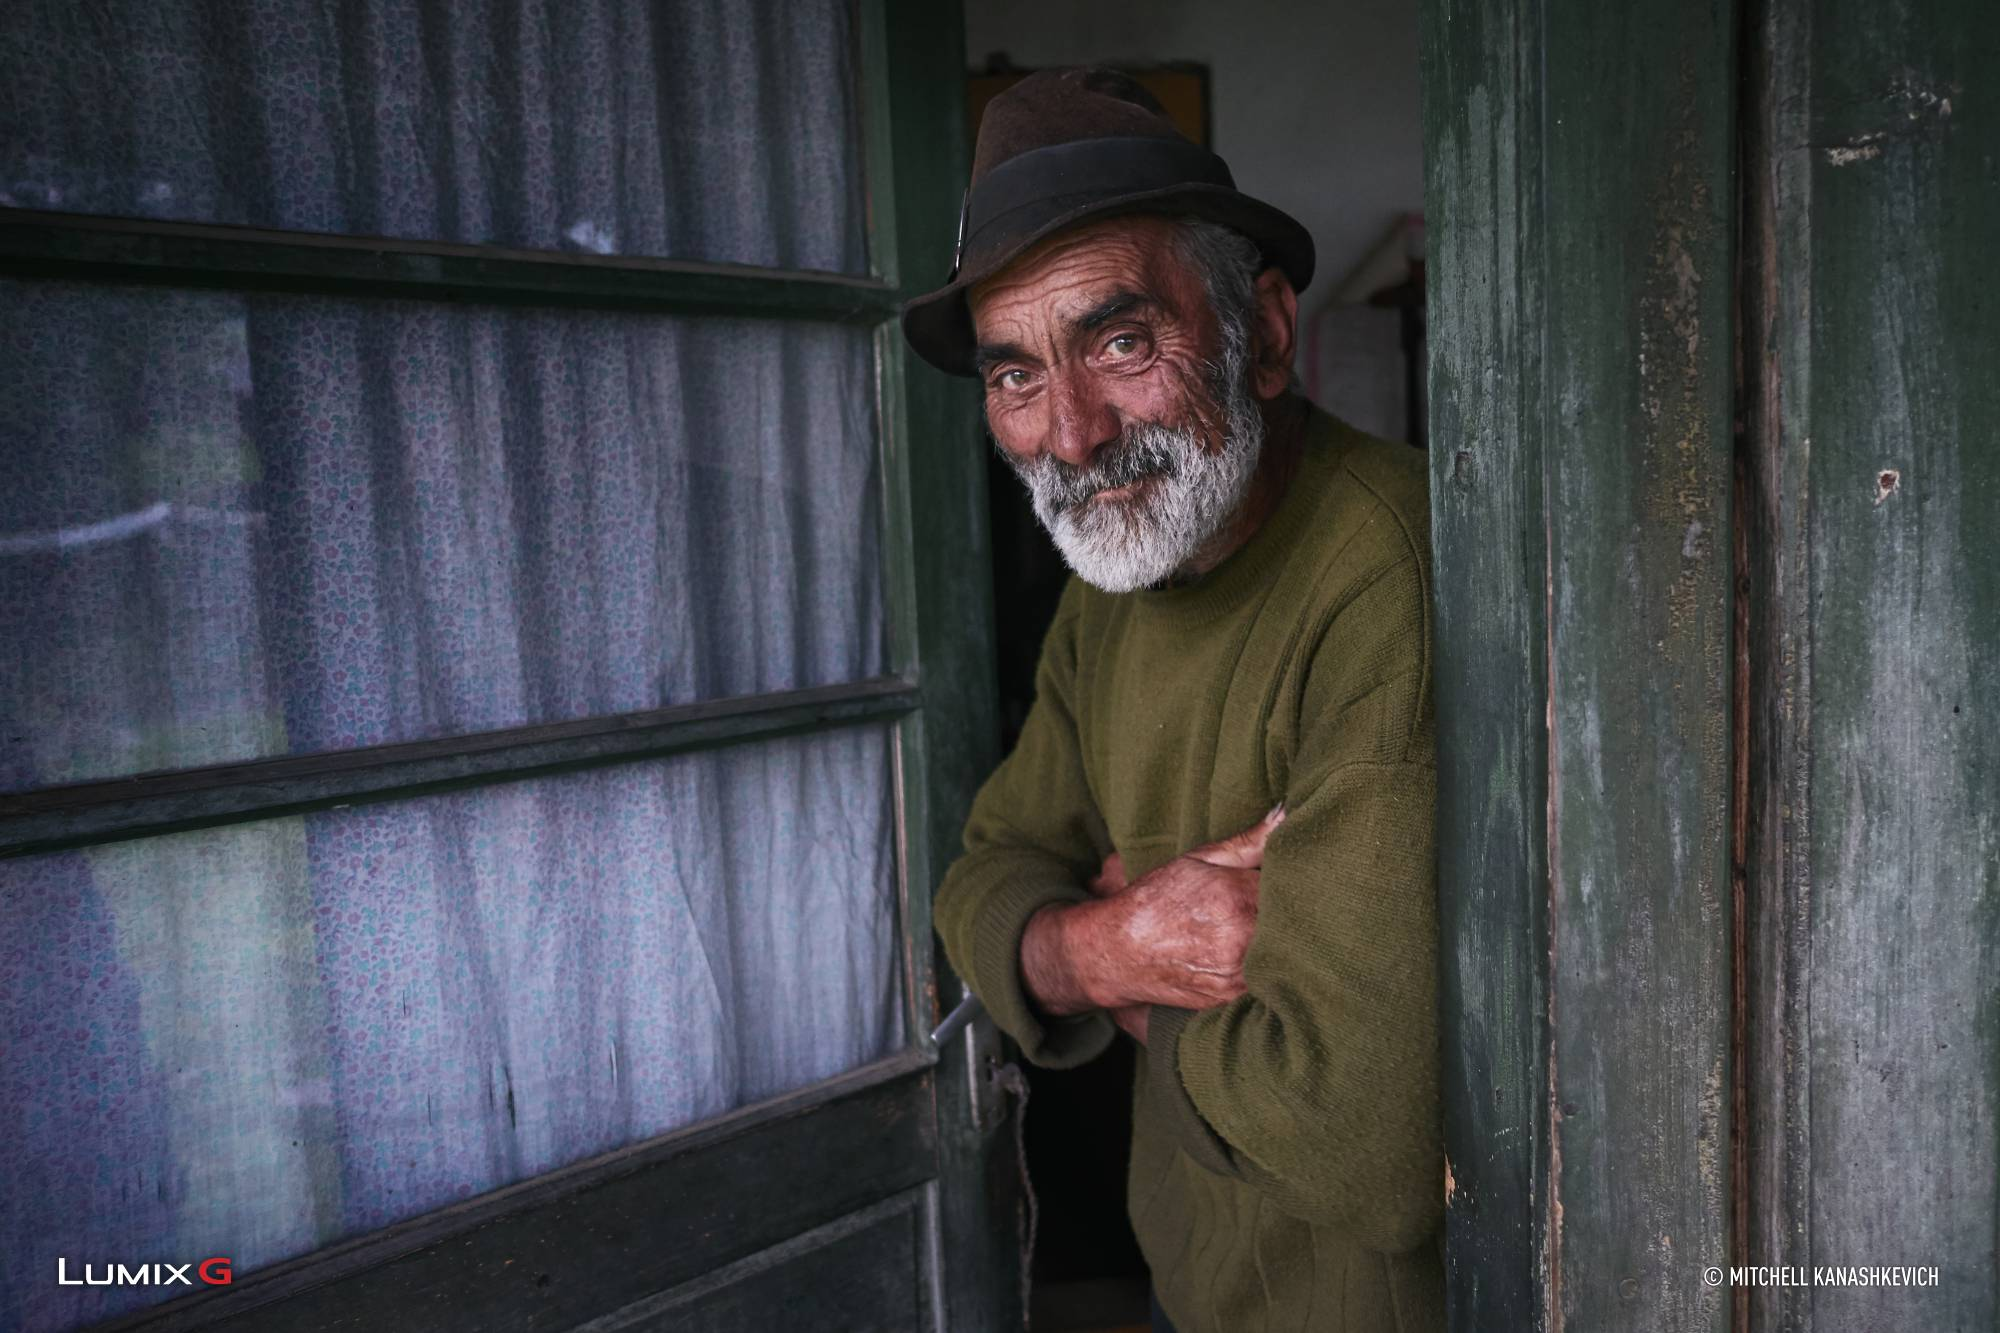 Grey-bearded man in a brown hat smiling in a rustic green doorway, photographed with the Panasonic LUMIX G85 camera